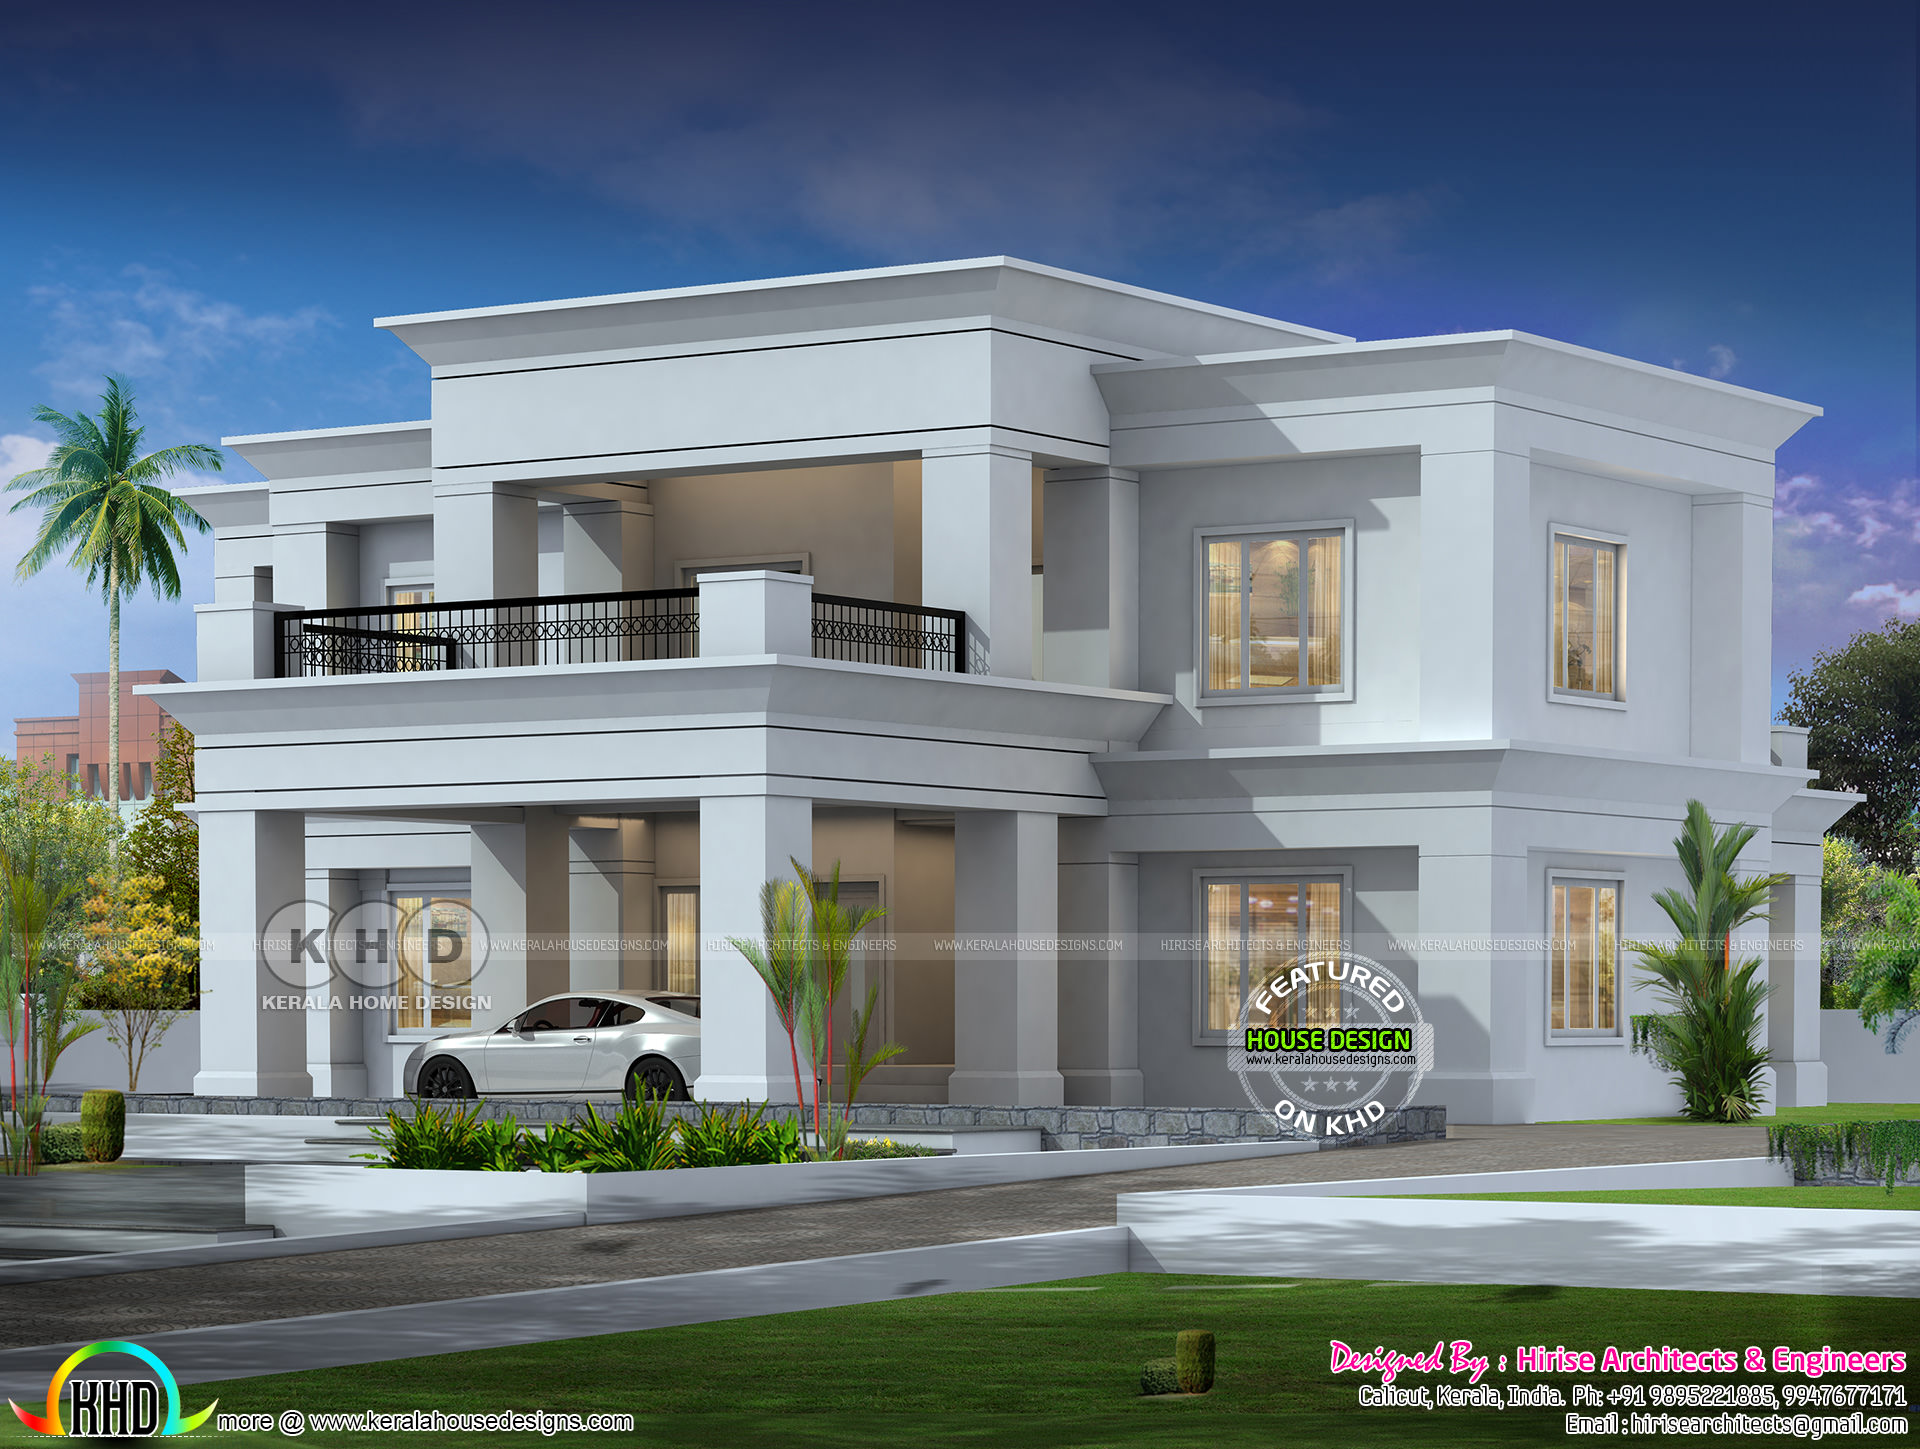 Colonial Type Flat Roof House Architecture Kerala Home Design And Floor Plans 8000 Houses